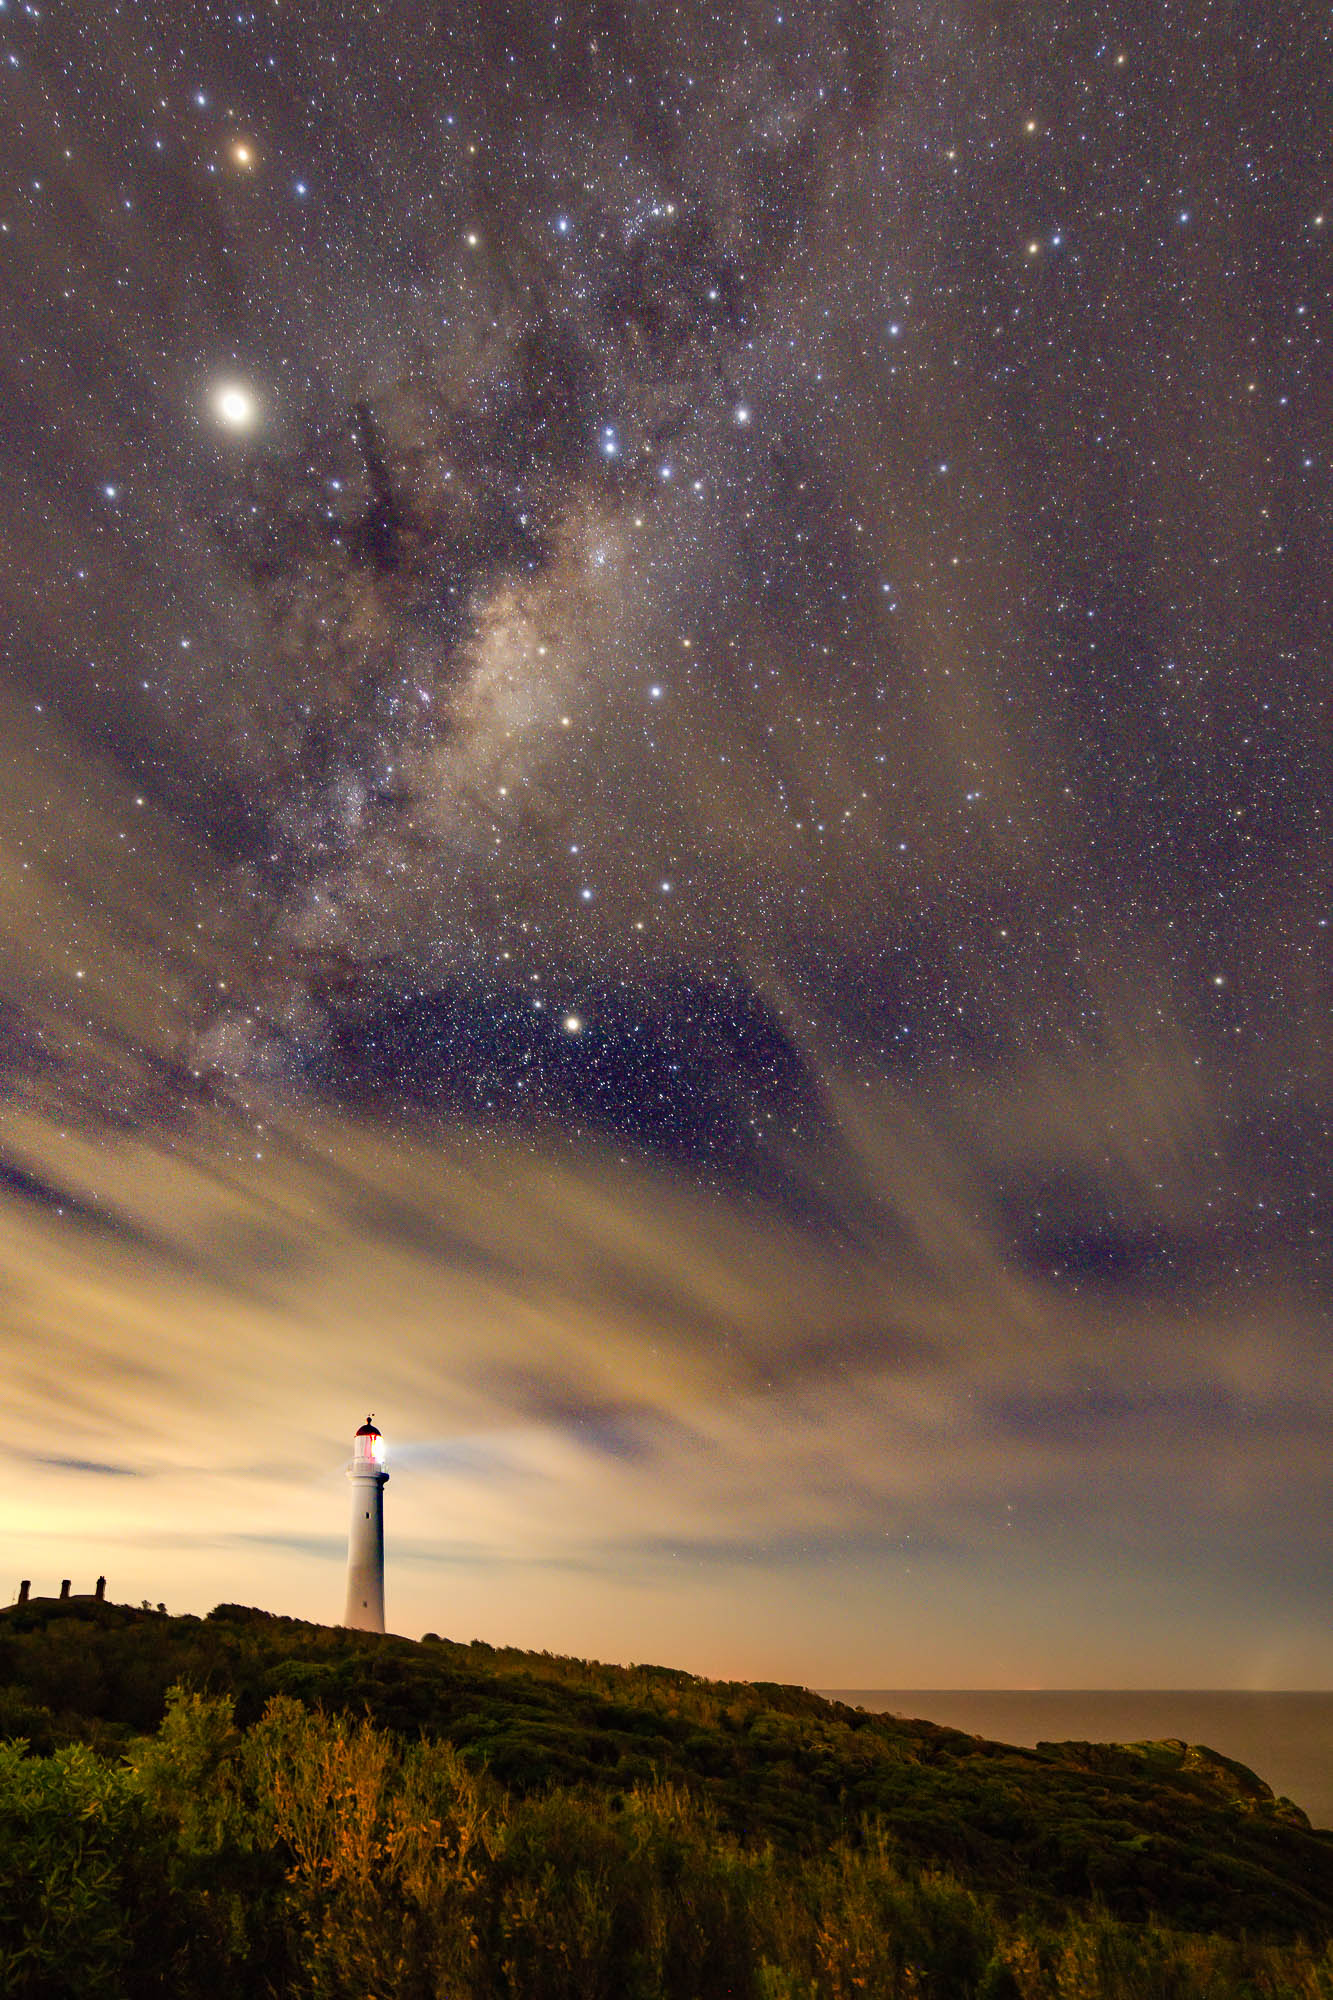 The night sky at Airey's Inlet along the Great Ocean Road